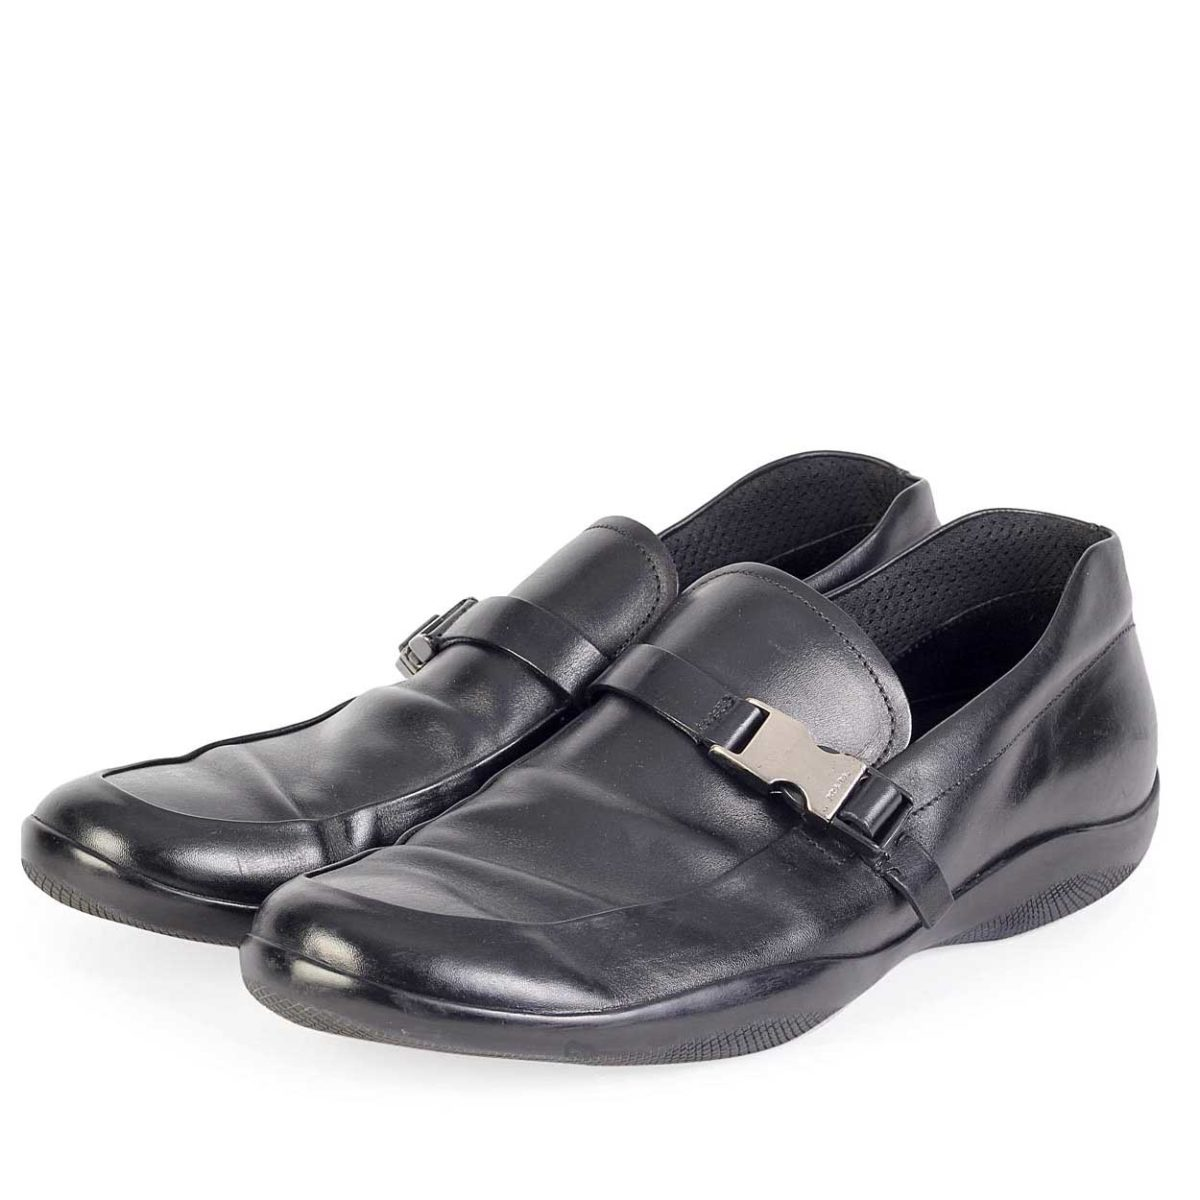 a5e499a5d8 PRADA Black Leather Mens Loafers with Rubber Soles - S: 46 (11)